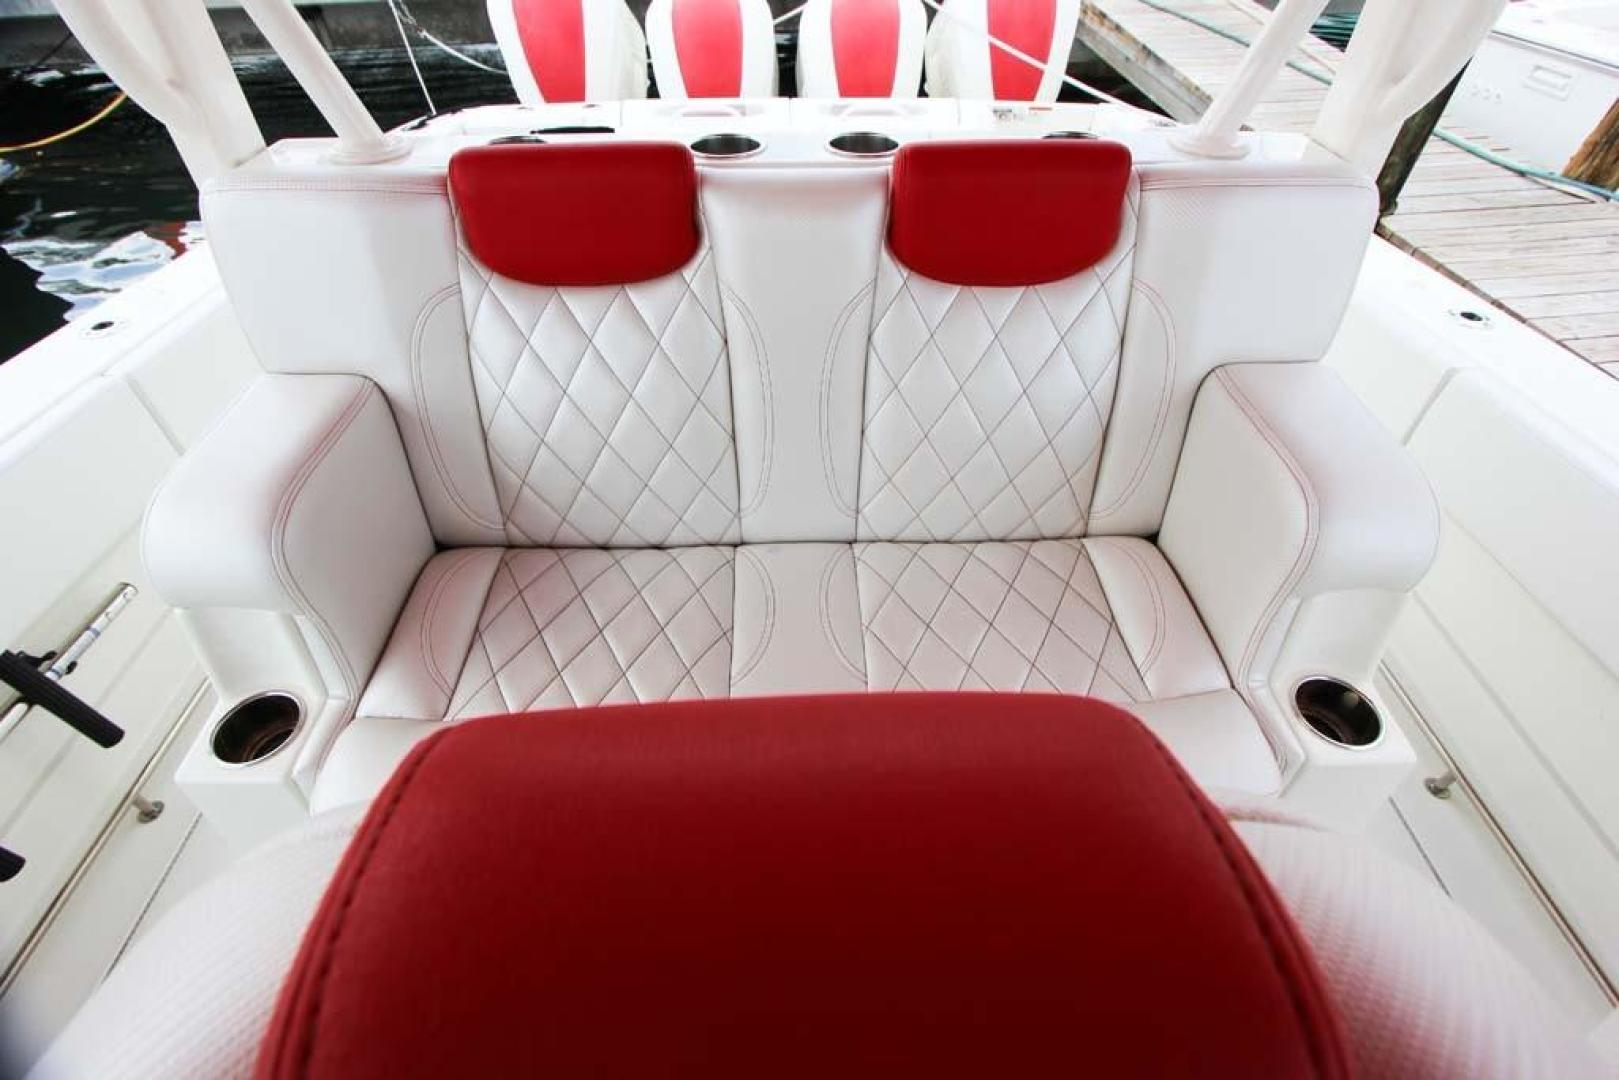 Hydra-Sports-Center Console 2015-Flash Coconut Grove-Florida-United States-Guest Seats-368859 | Thumbnail